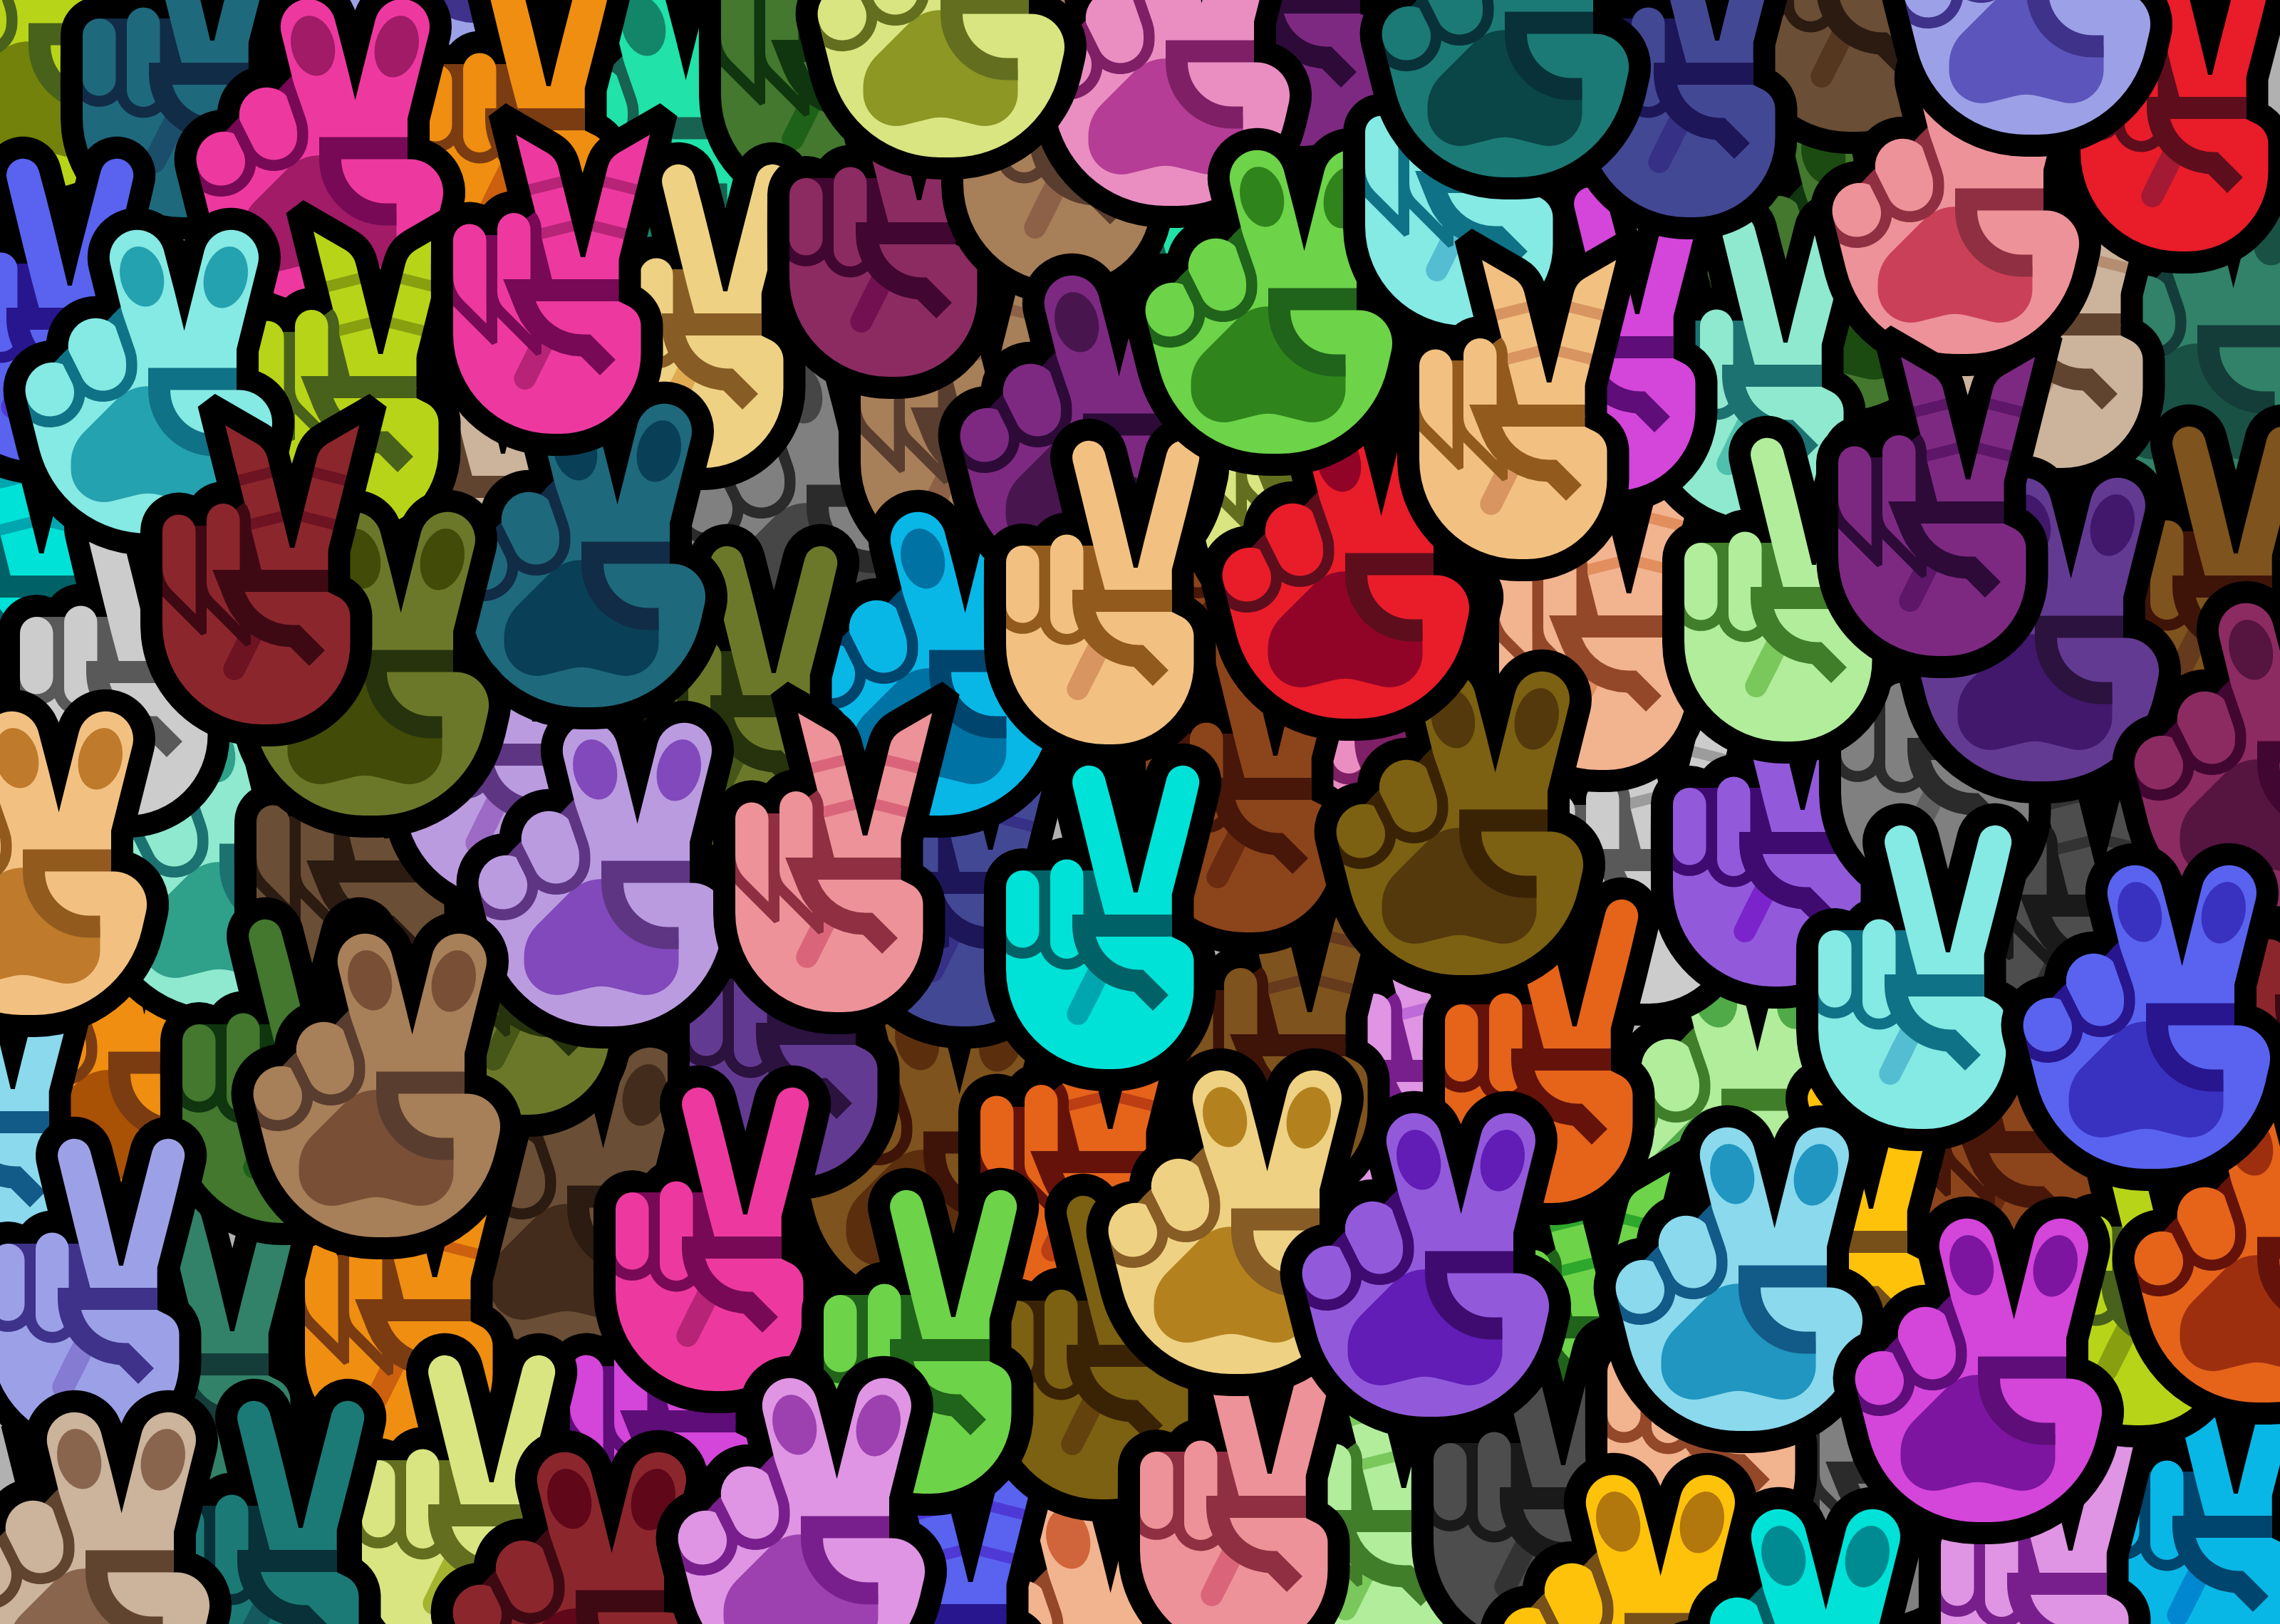 'V' hands in all of Mutant Standard 0.3.0's hand variations overlapped on top of each other in a pile.